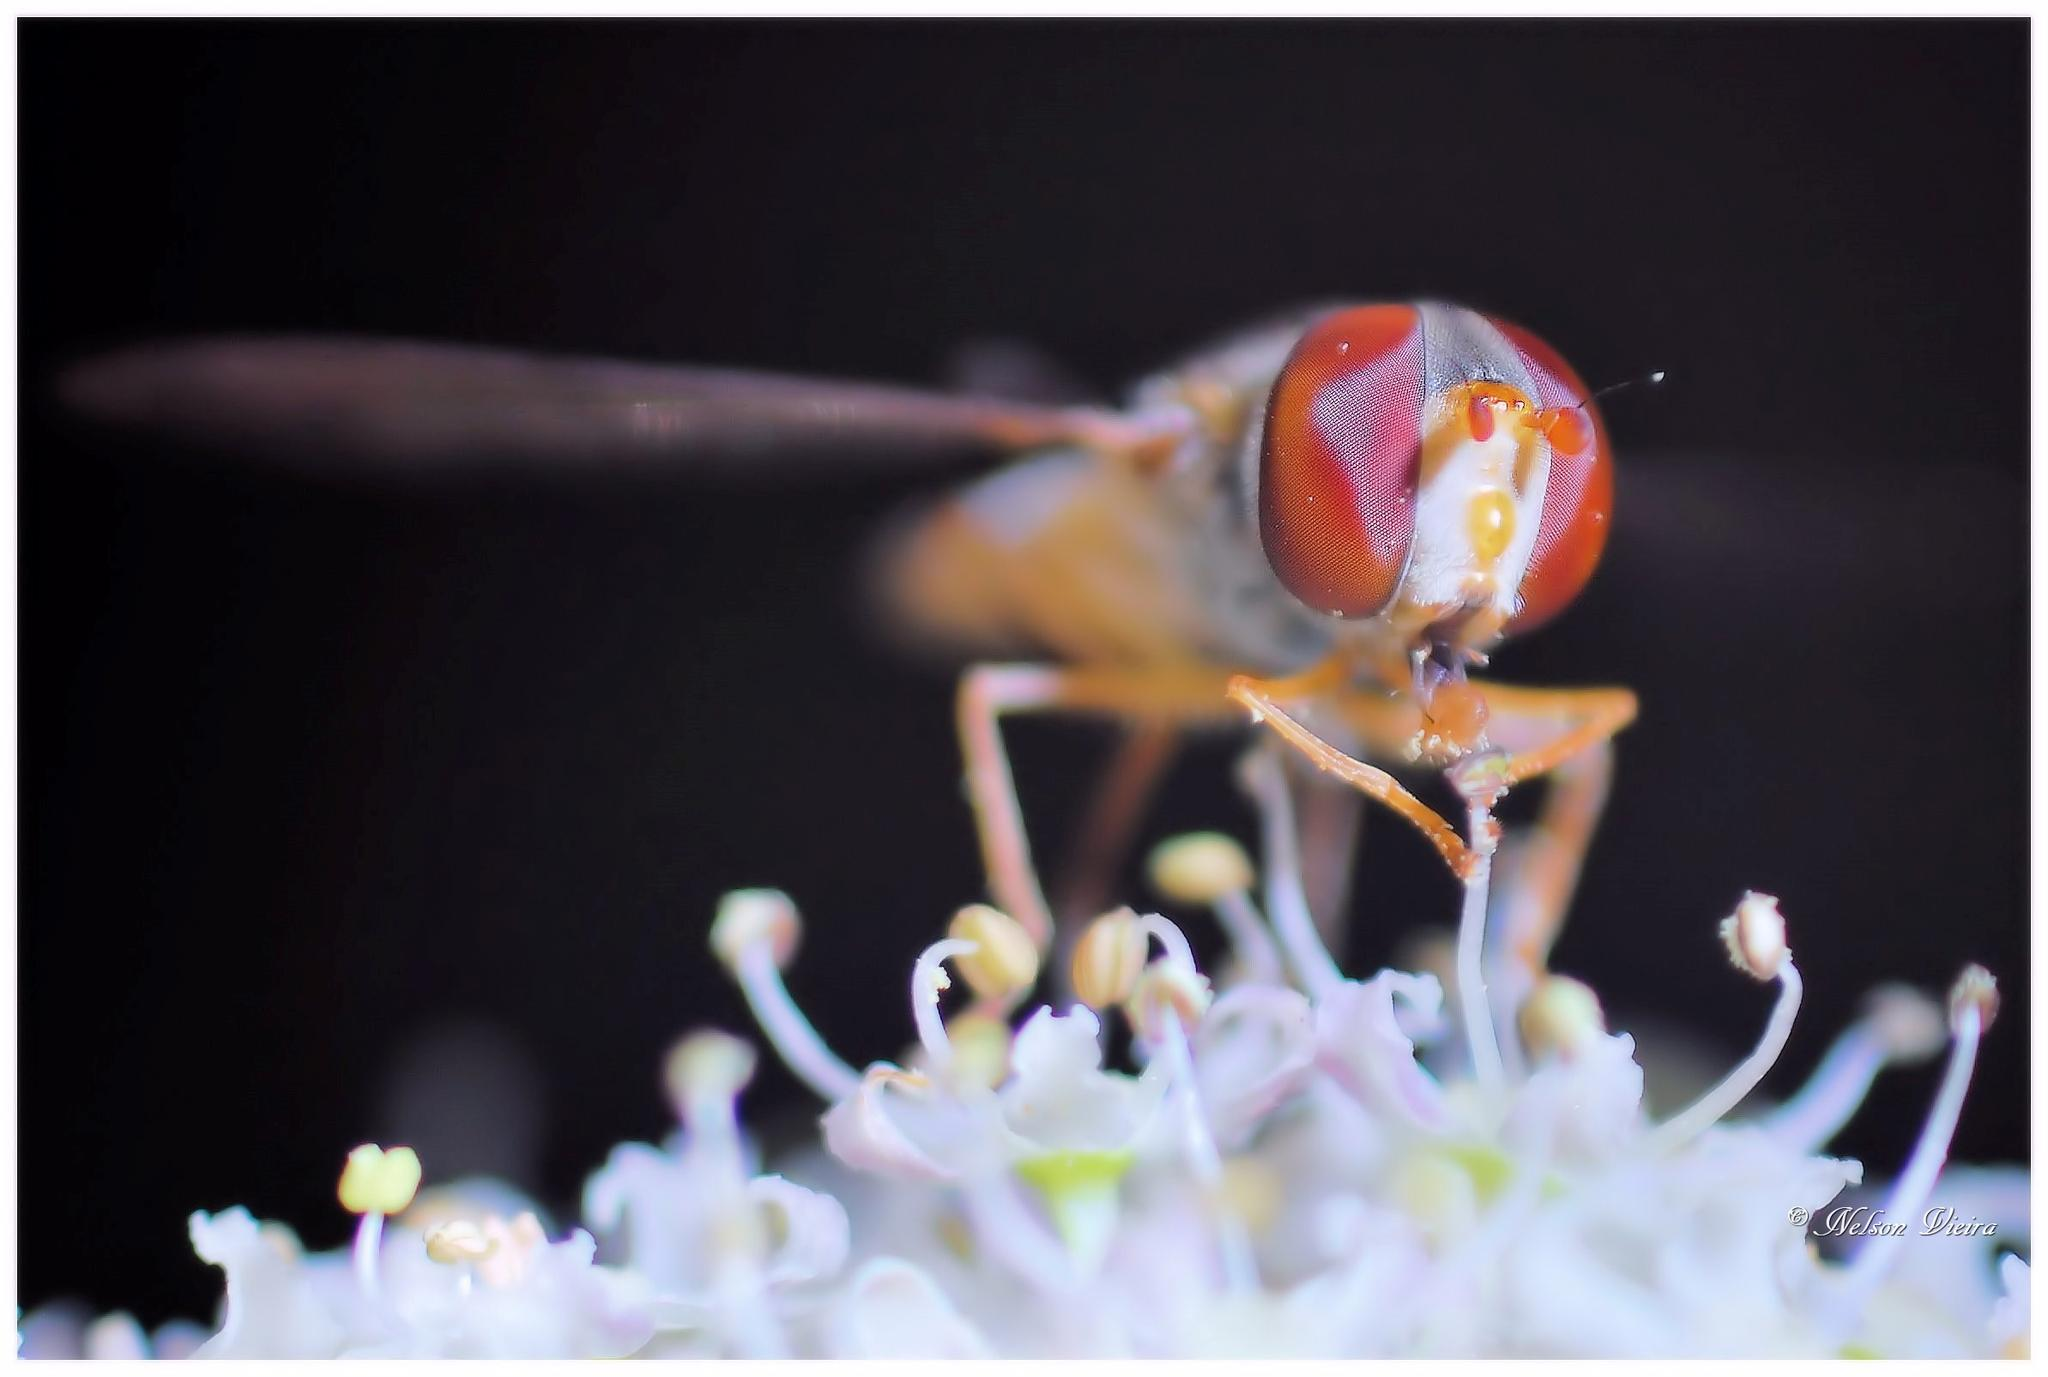 Flower Fly  by Nelson Vieira